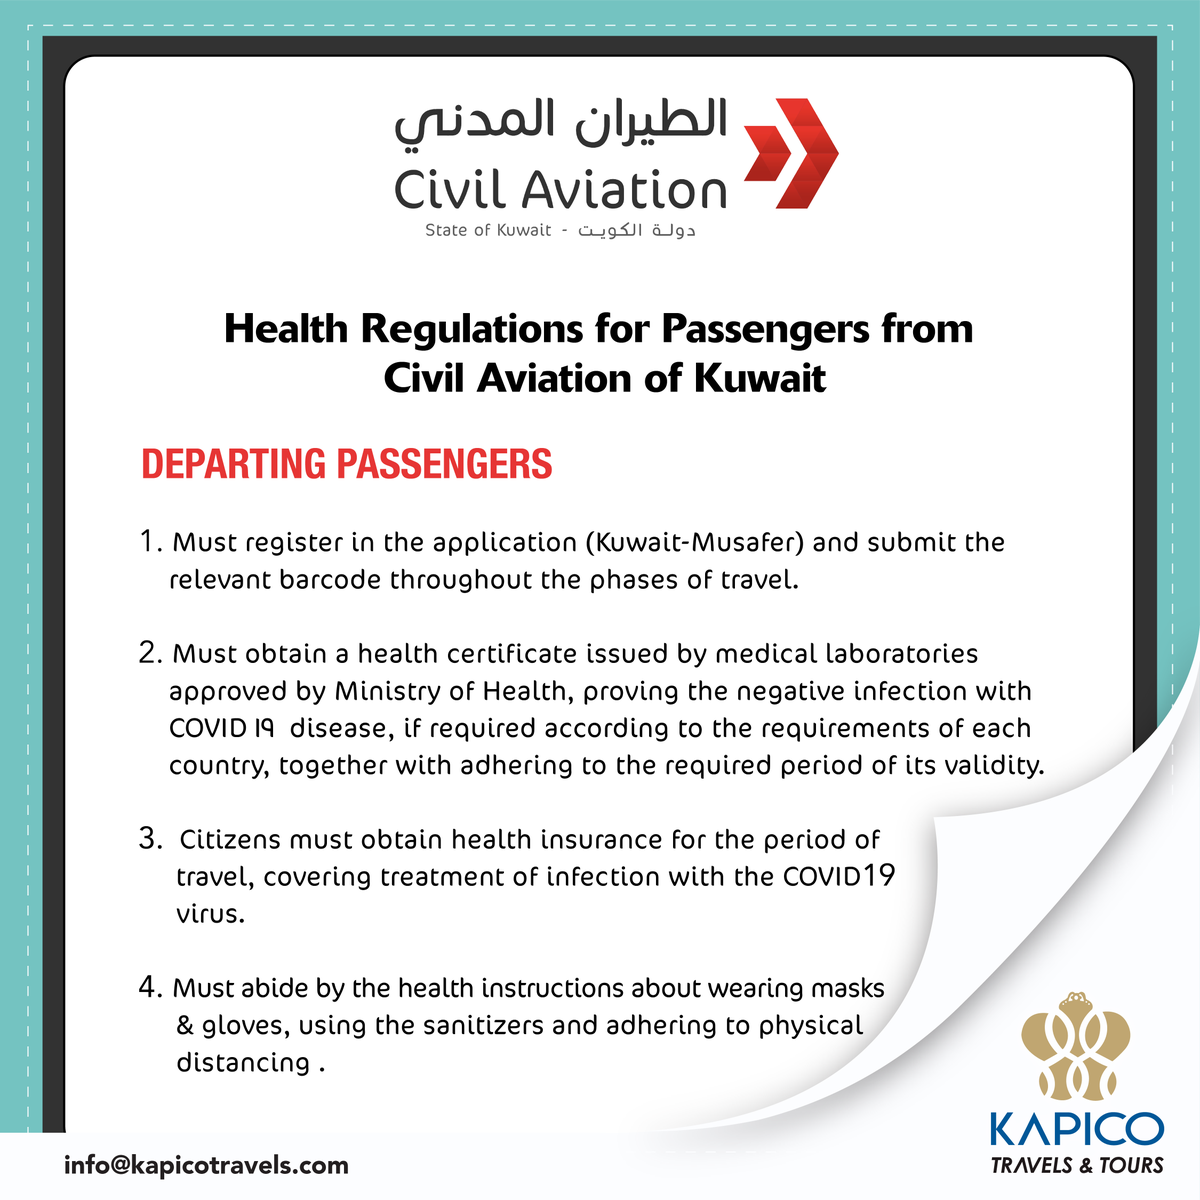 Important Health Regulations from Civil Aviation for passengers who are traveling.  الطيران المدني يصدر البروتوكول الصحي للمسافرين  #kapico #kapicotravels #civilaviation #kuwait #covidsafetymeasures #healthmeasures #healthregulations #traveling #kuwaitmousafer #travelmeasures https://t.co/qr7qwoqFgf